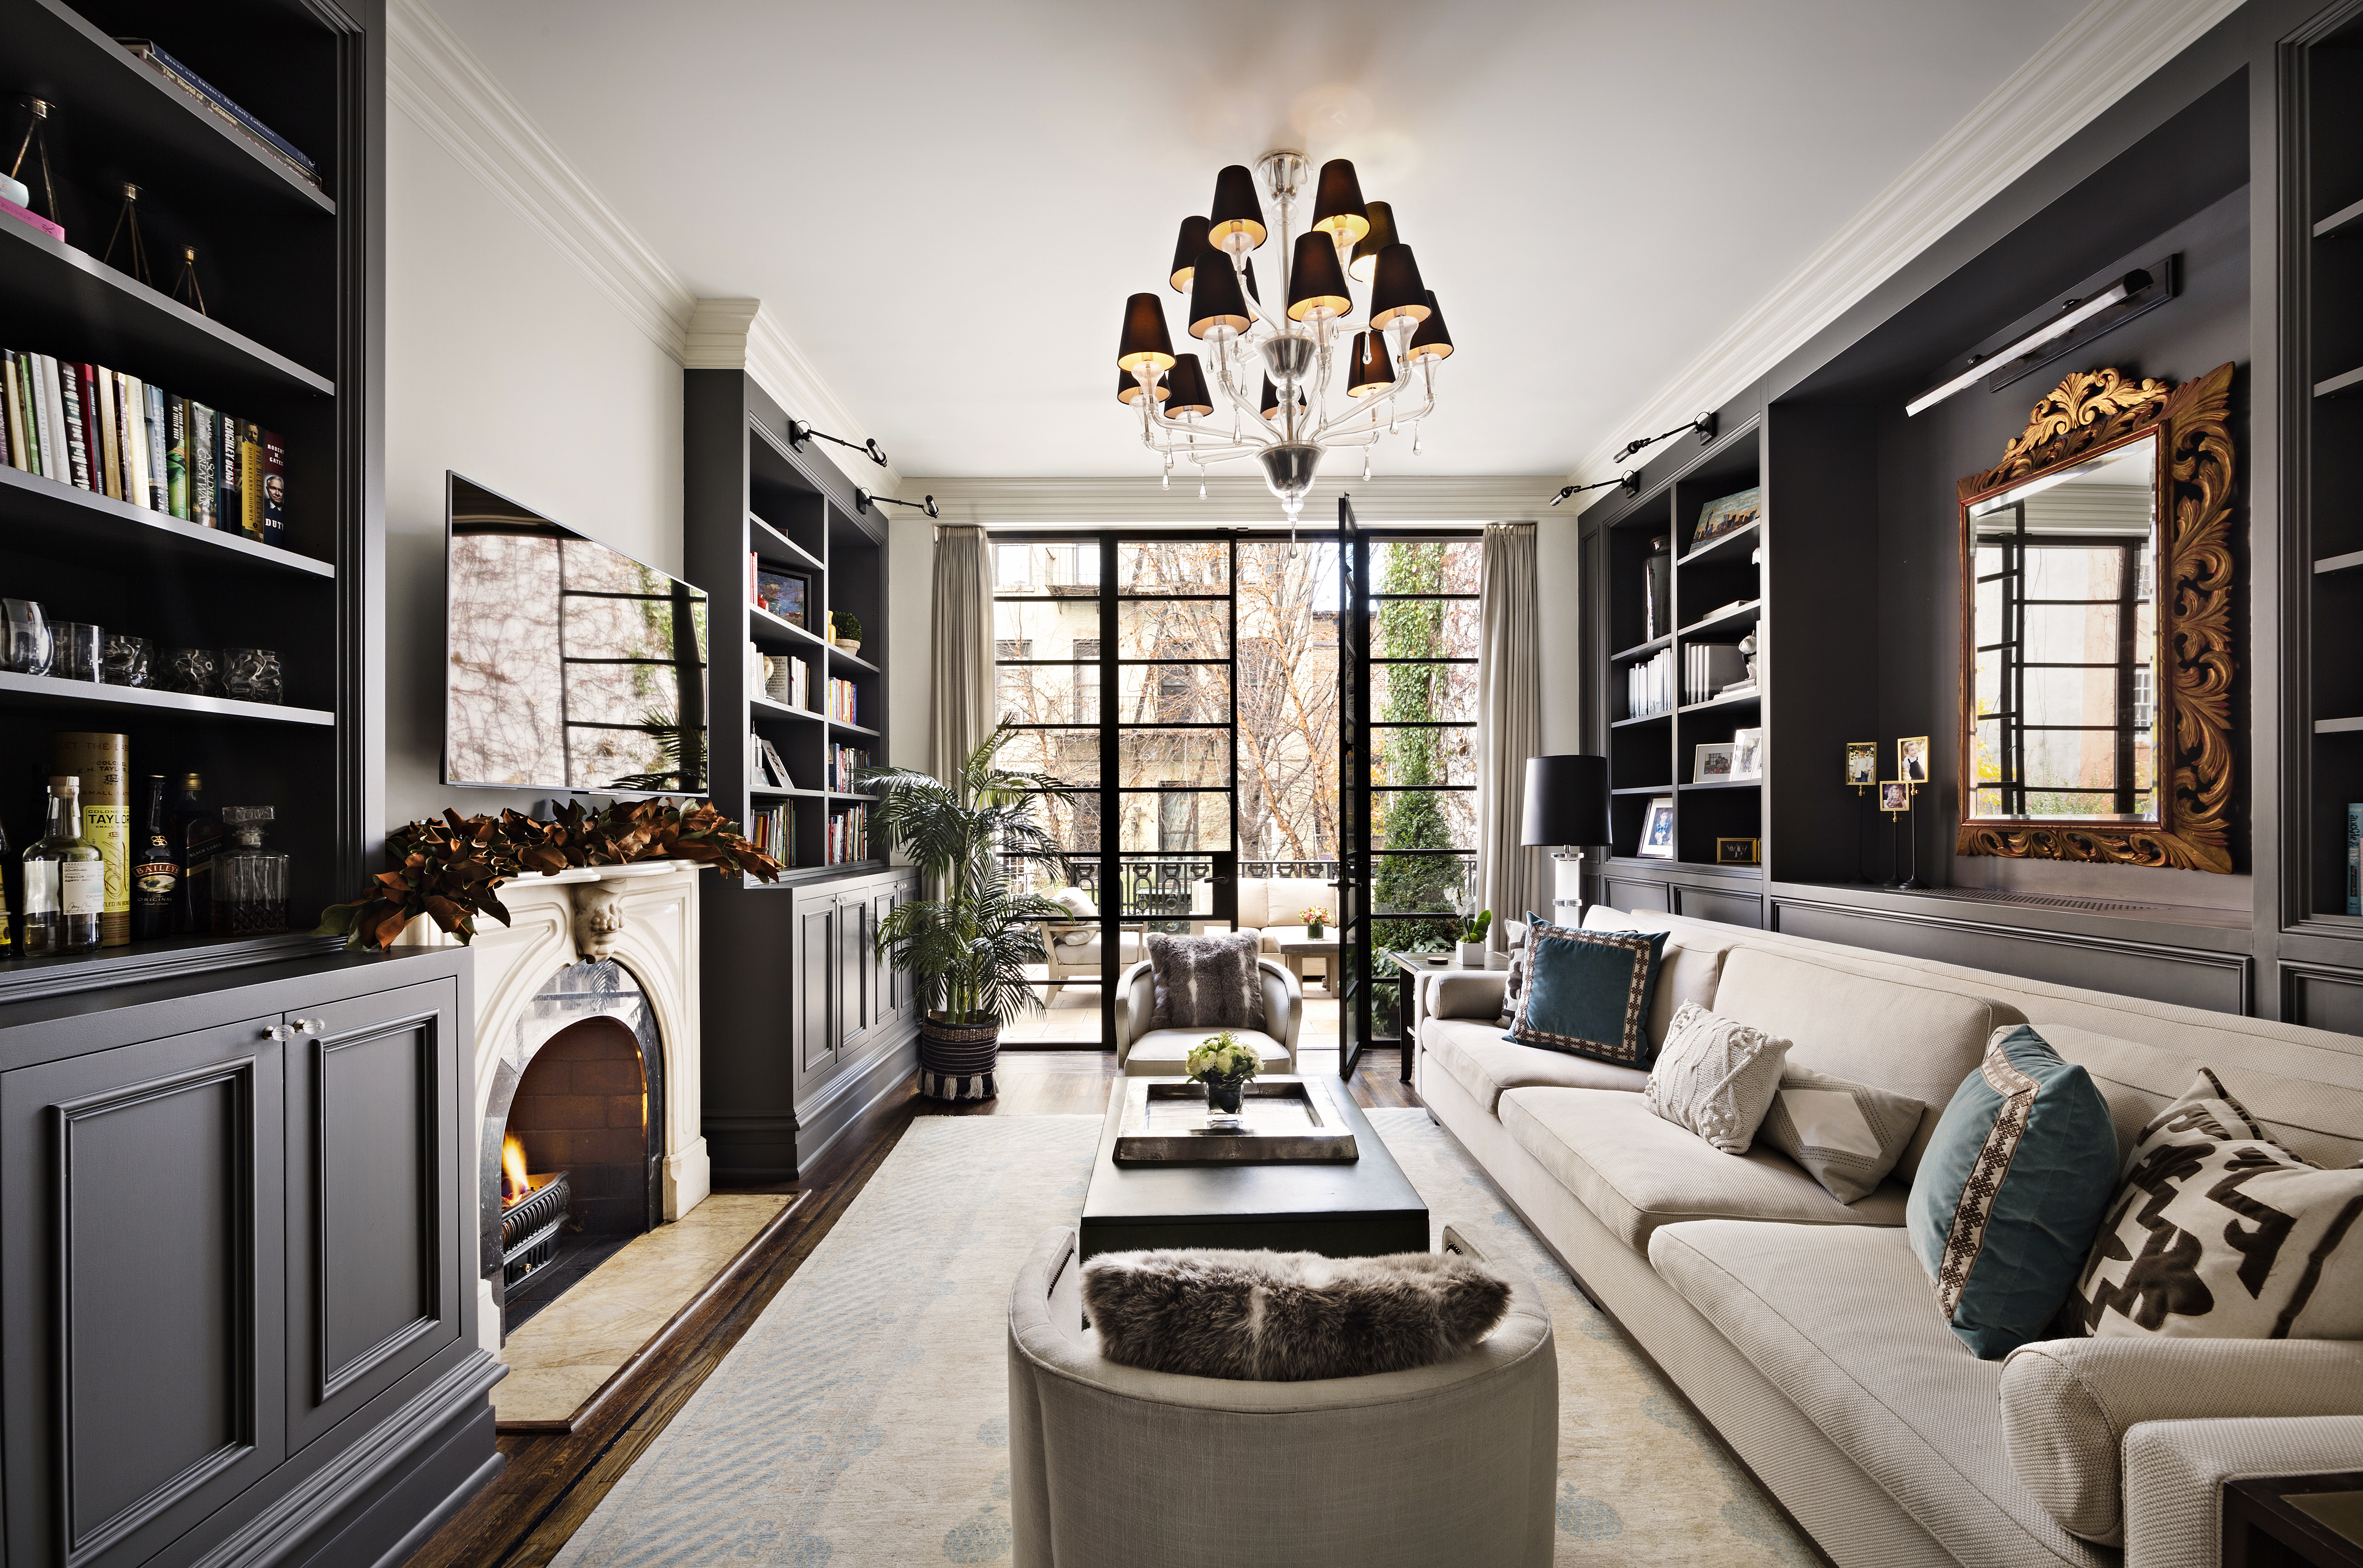 A living room area with a fireplace, a beige couch, a chandelier, floor-to-ceiling glass casement doors, and wooden bookshelves.